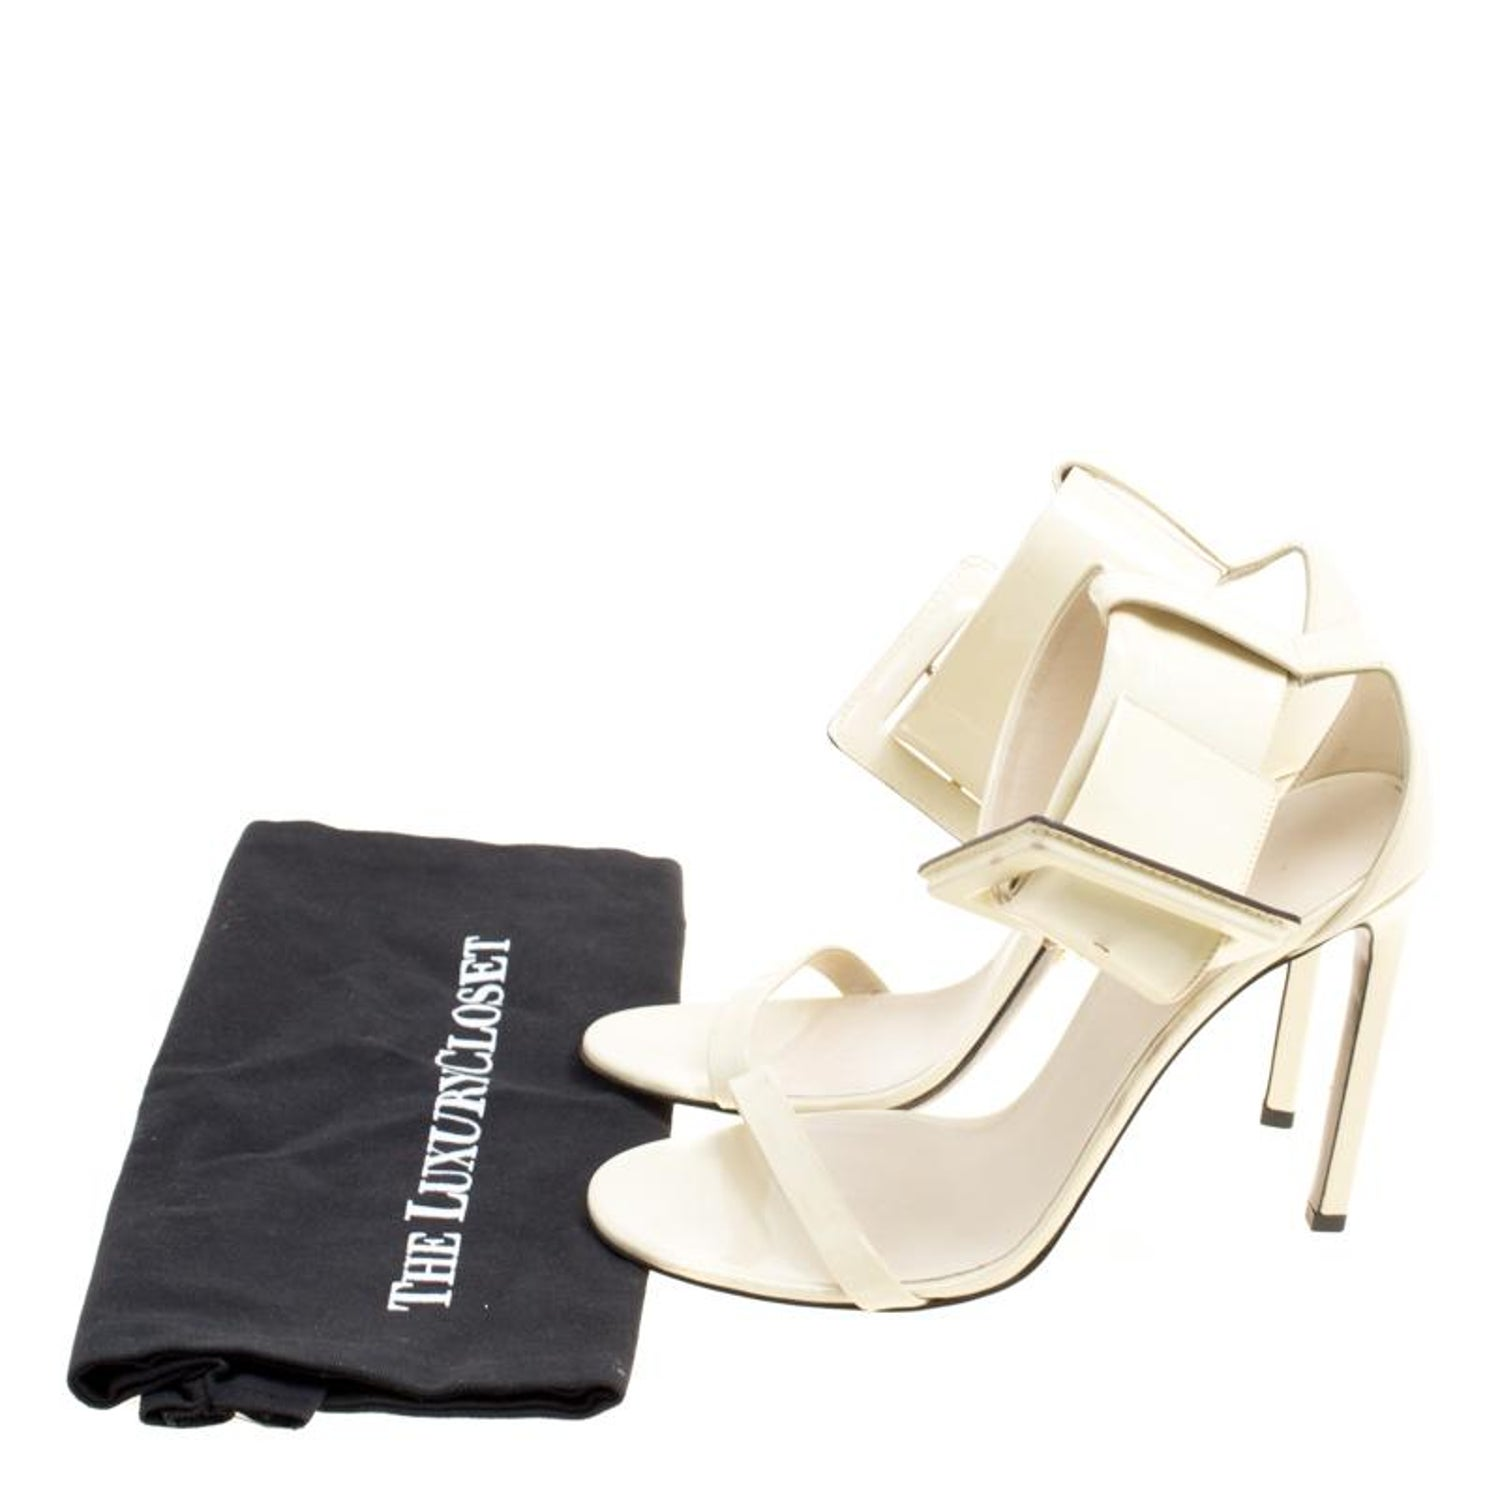 27eb98d63 Gucci Cream Buckled Patent Leather Sandals Size 39 For Sale at 1stdibs